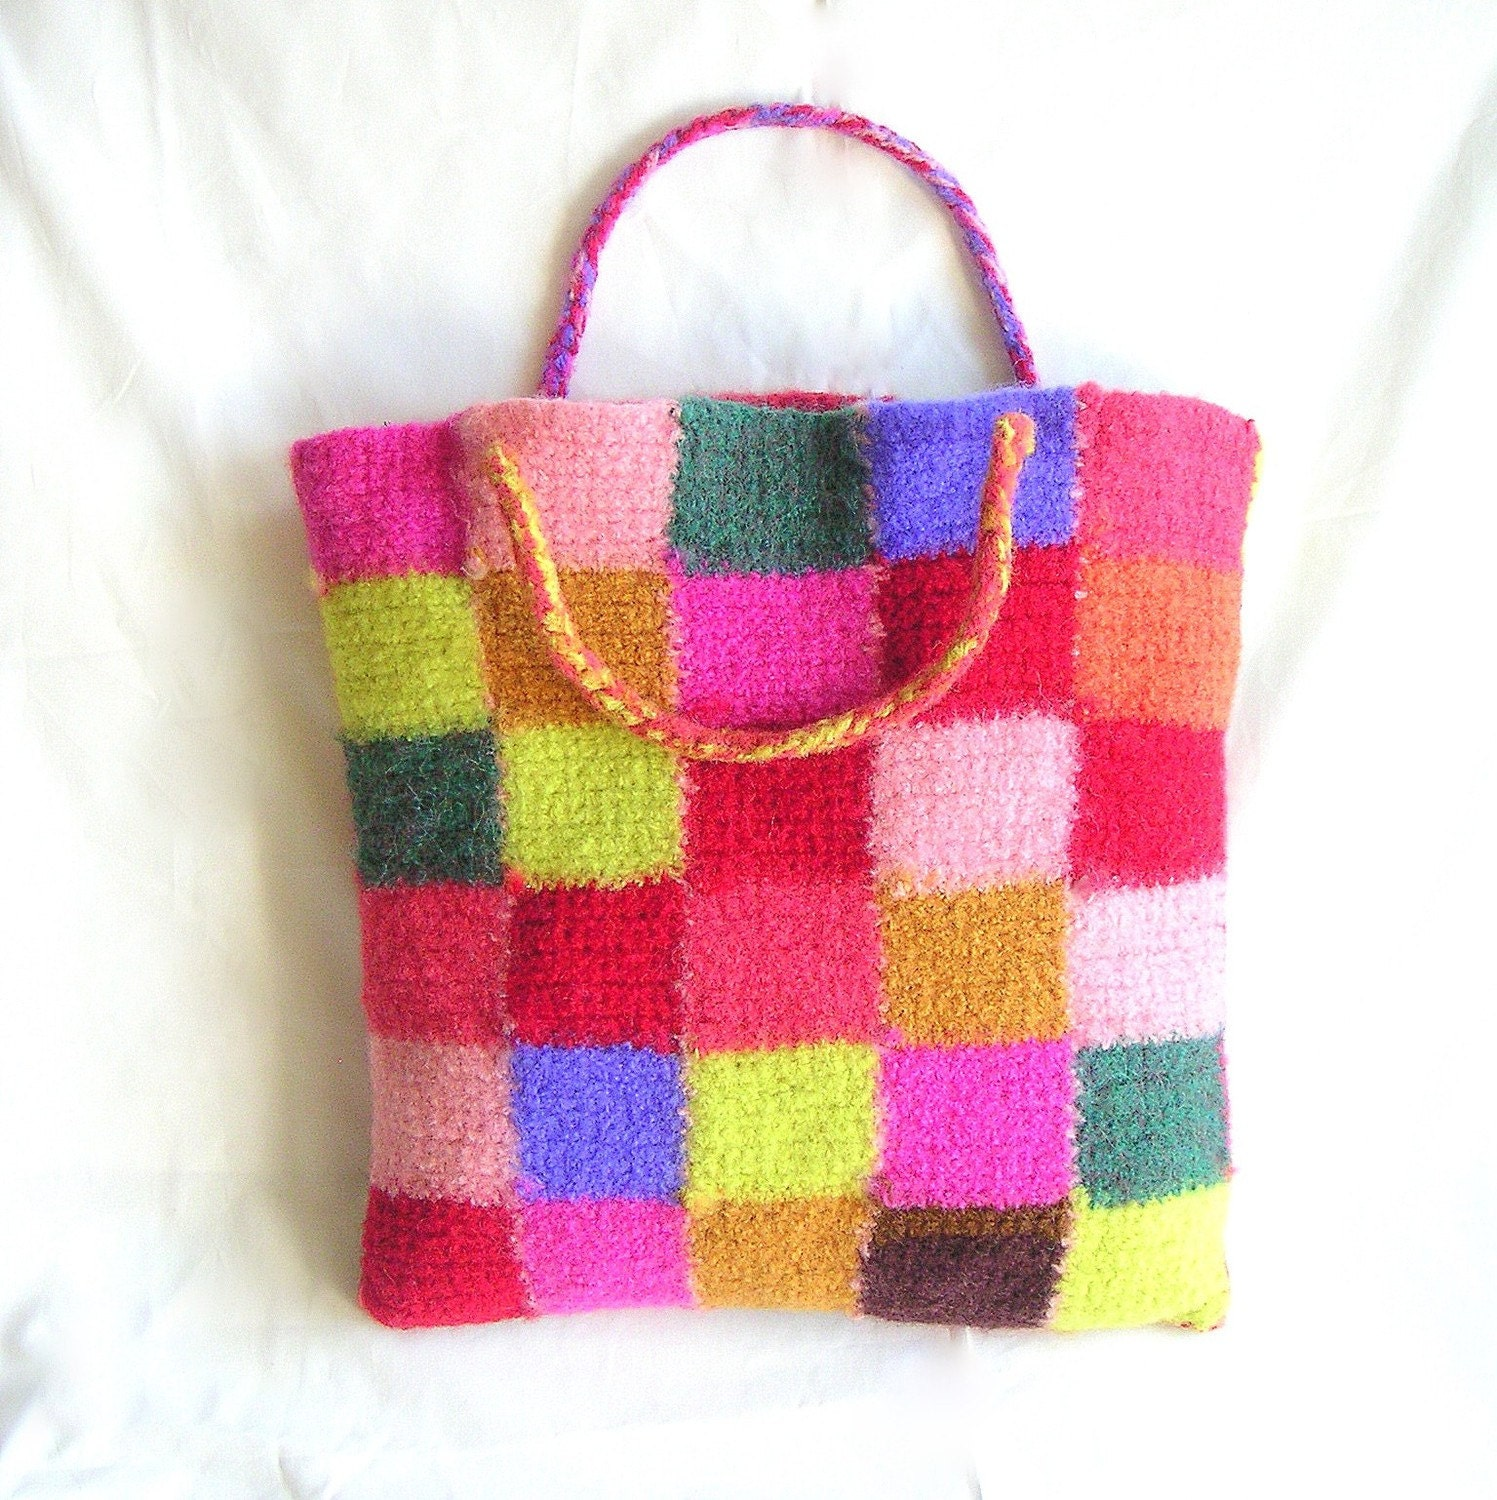 Crochet Felted Tote Bag Pattern : Felted Bag Crochet Pattern Tutorial pdf by ...